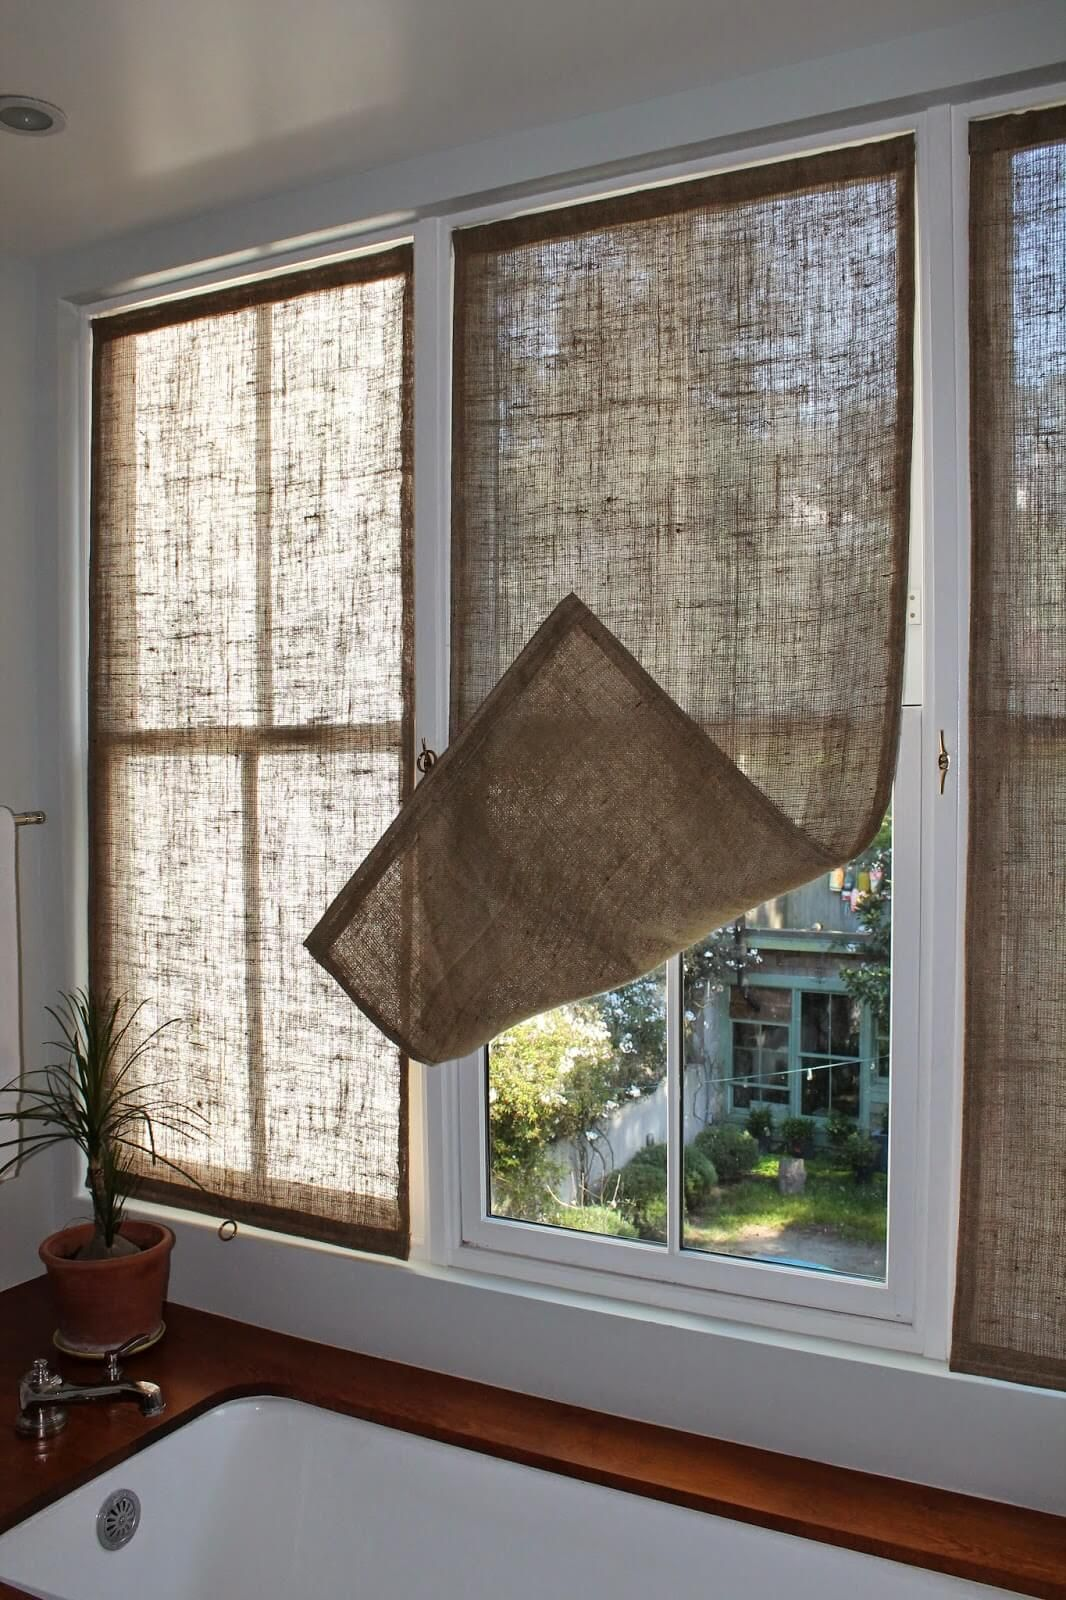 Window covering ideas   farmhouse window treatment ideas to bring oldfashioned charm to